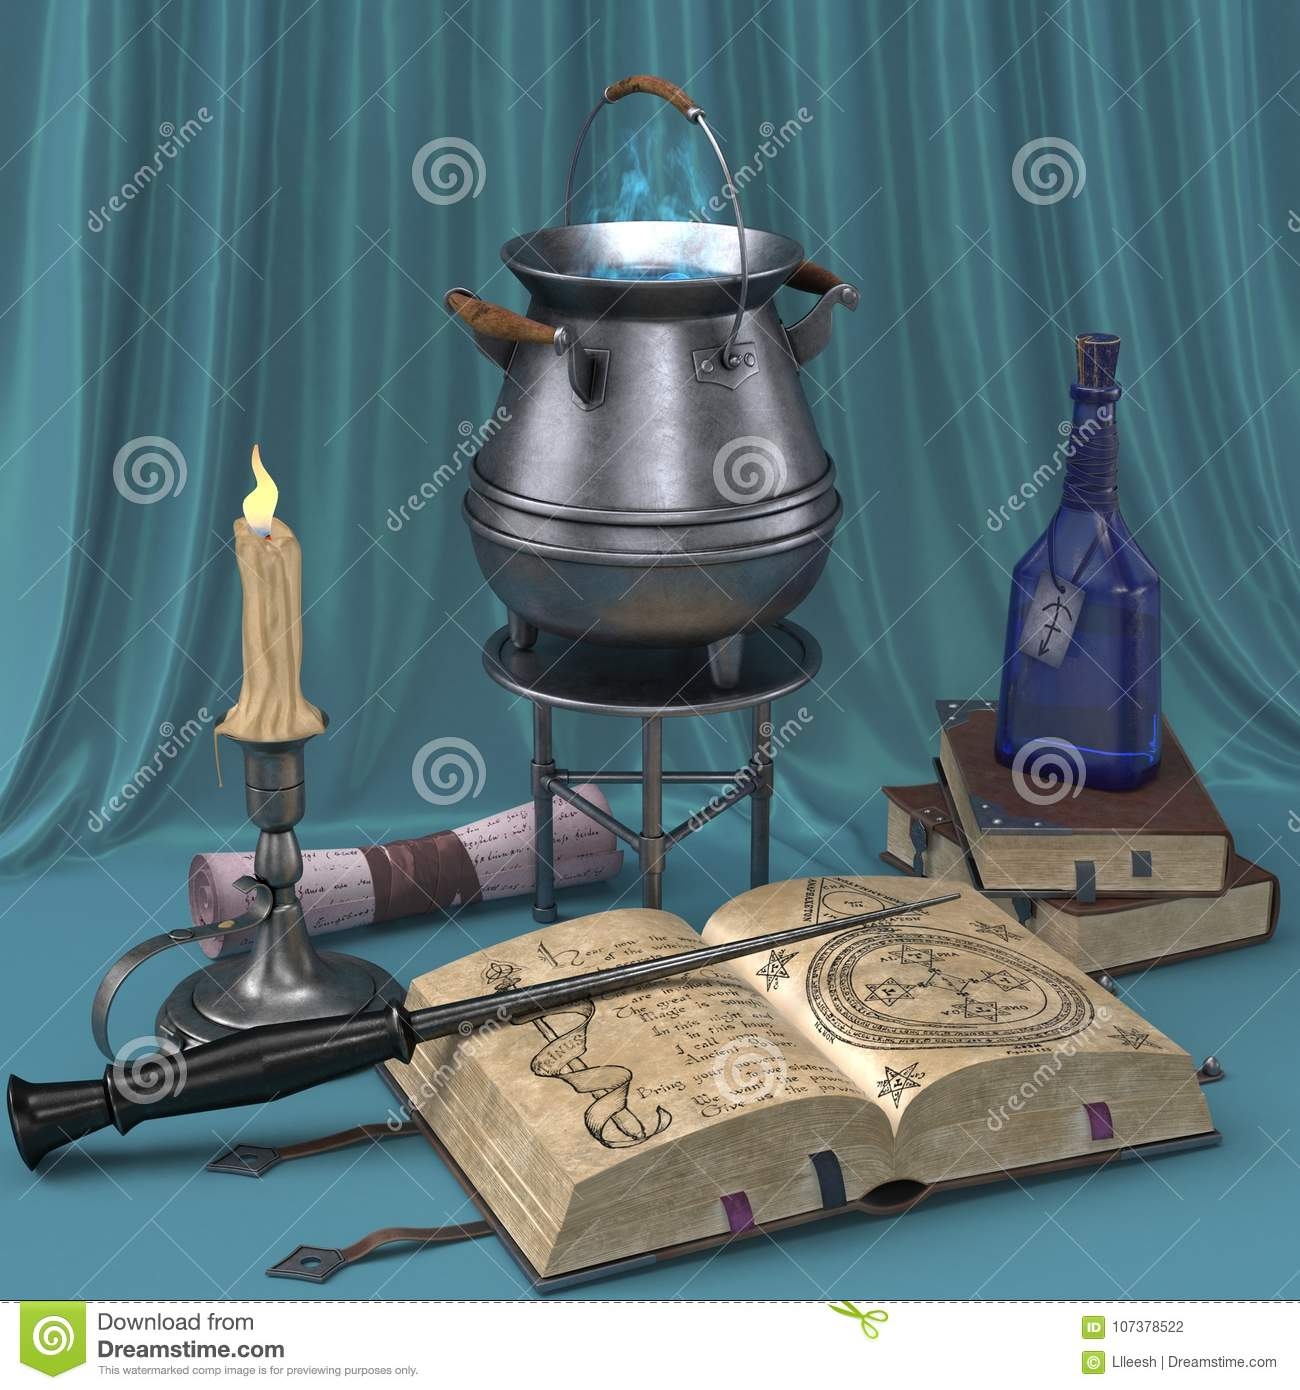 Cartoon Magical Still Life With Pictures Of Books, Candles